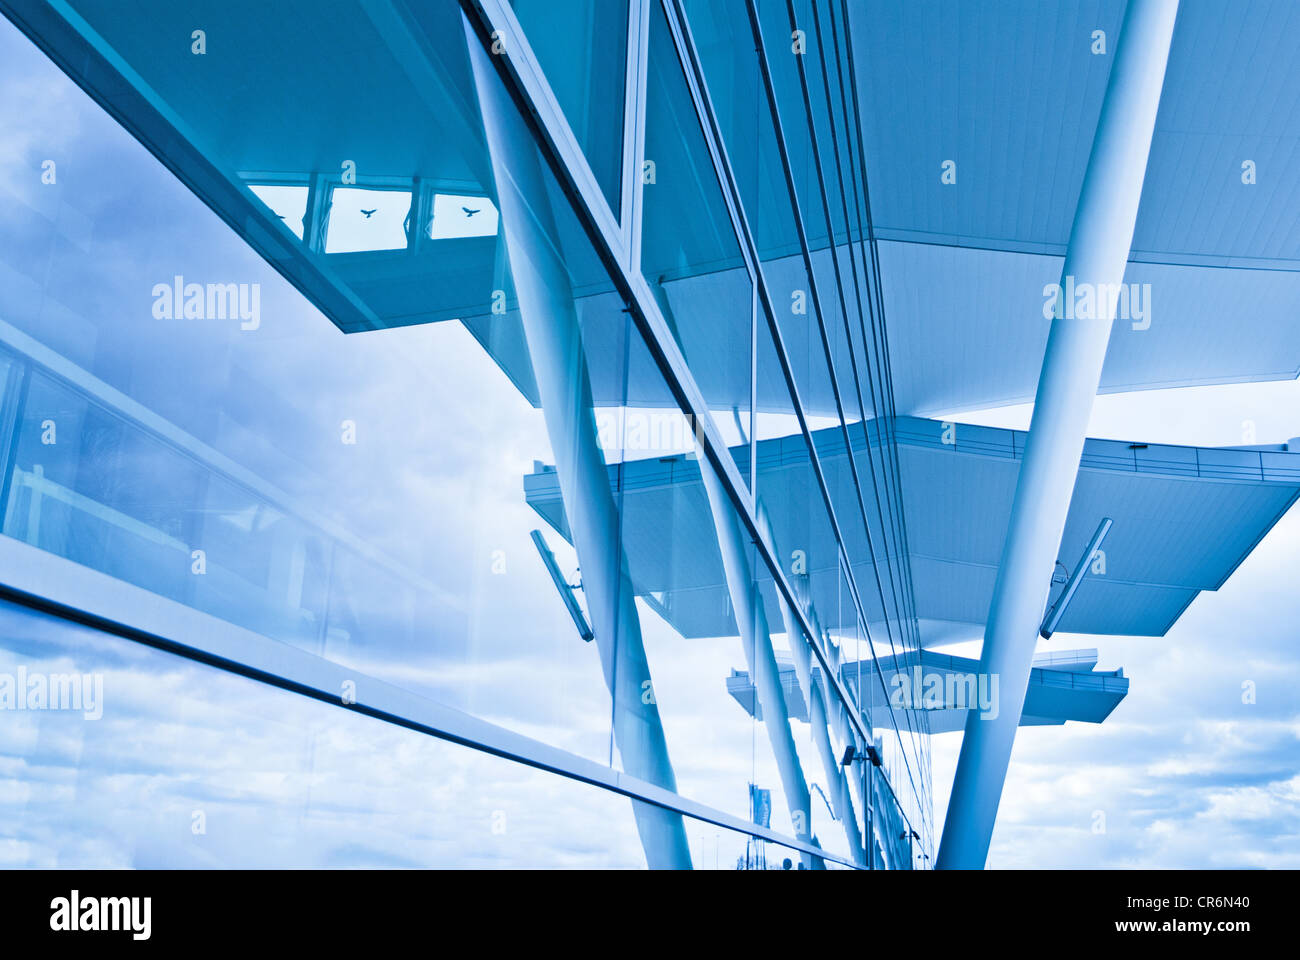 Wroclaw Modern Architecture Stock Photos & Wroclaw Modern ...